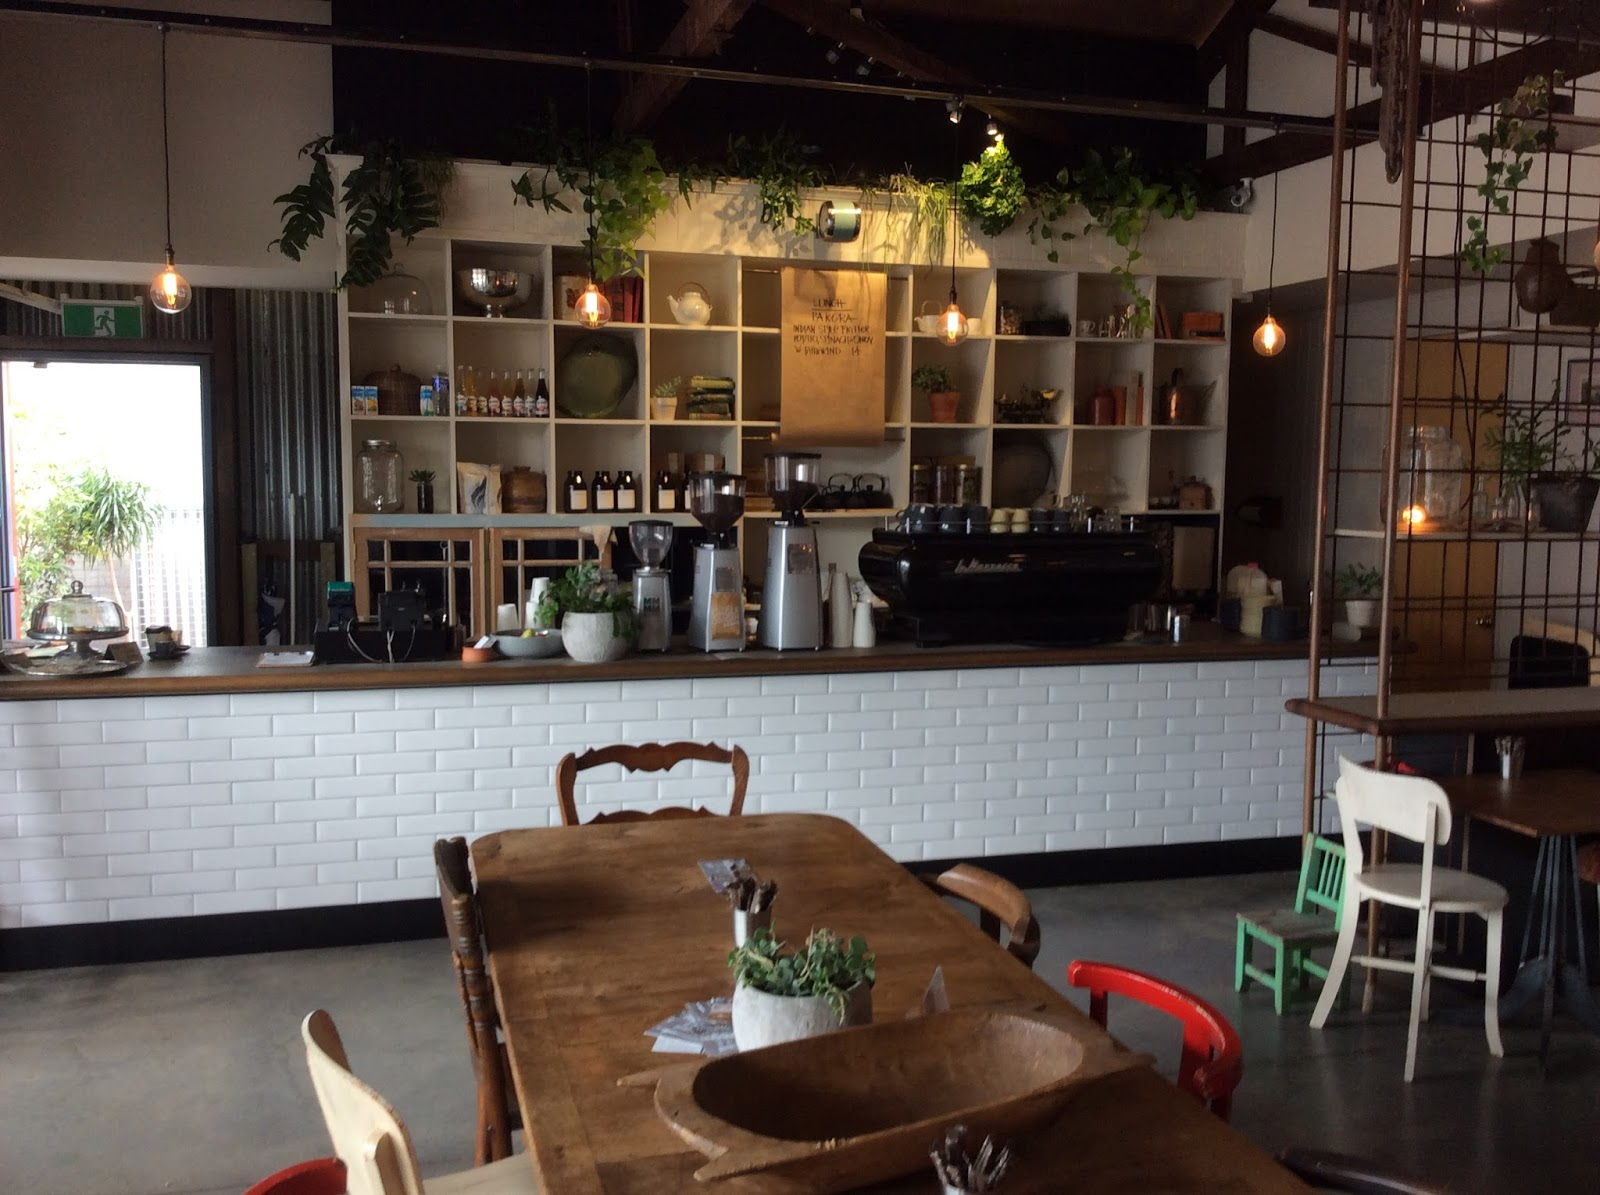 inside the eclectic mix of tables and chairs against the simple counter and shelves really make you feel at home the plants spilling over the shelves - Glass Front Cafe 2015